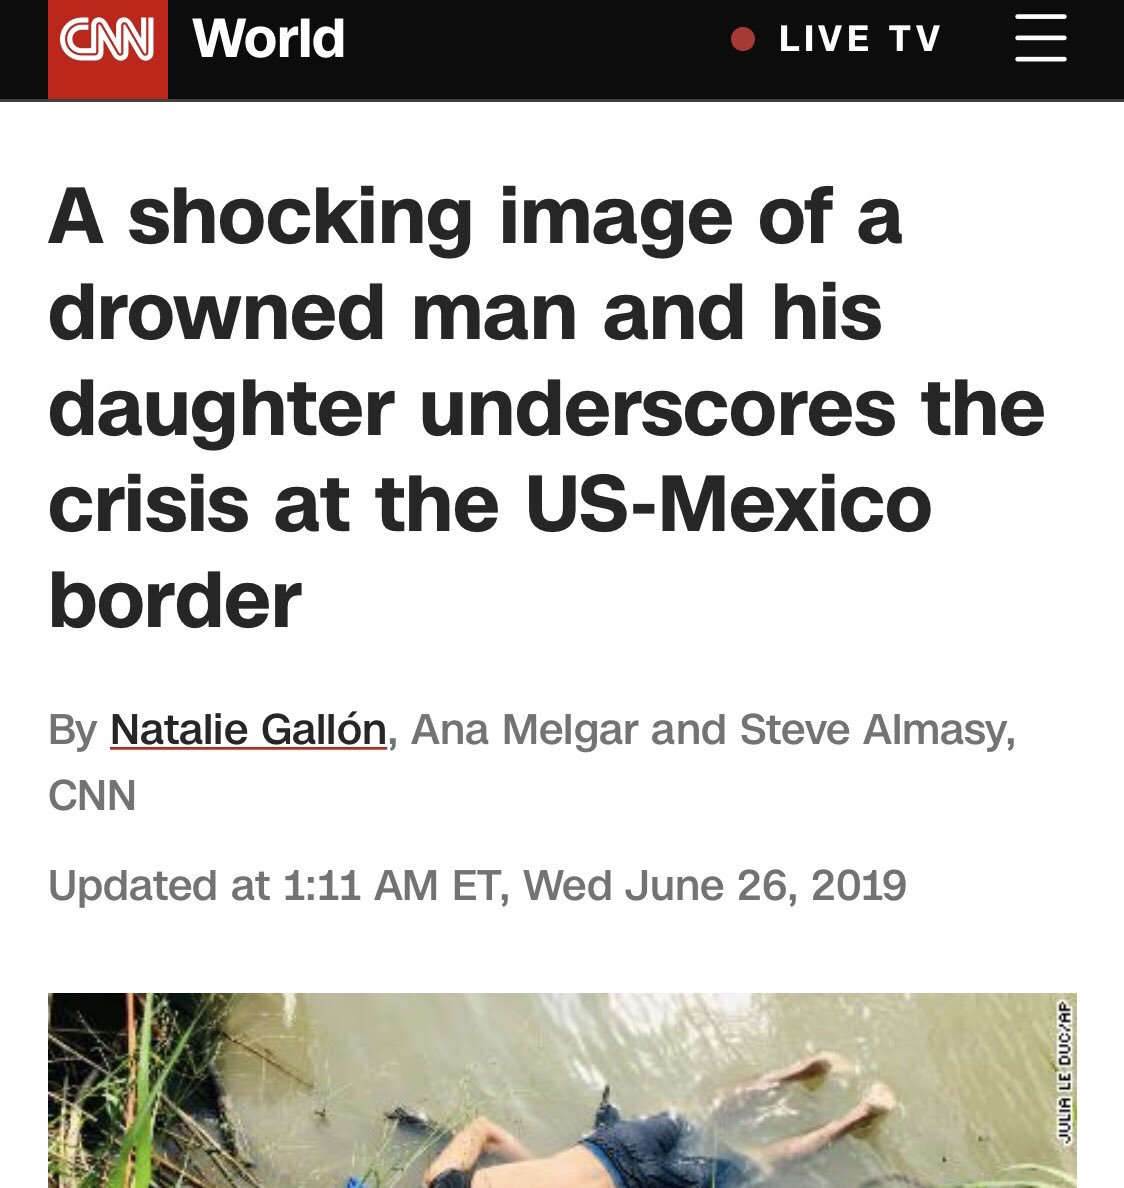 How come editors in msm don't provide consistent principles on when to publish graphic photos of dead people & children? For example, there's no holding back on images of dead migrants but they don't run graphic photos of dead victims of terrorism or murdered Israelis. <br>http://pic.twitter.com/HO9NpdyLsY